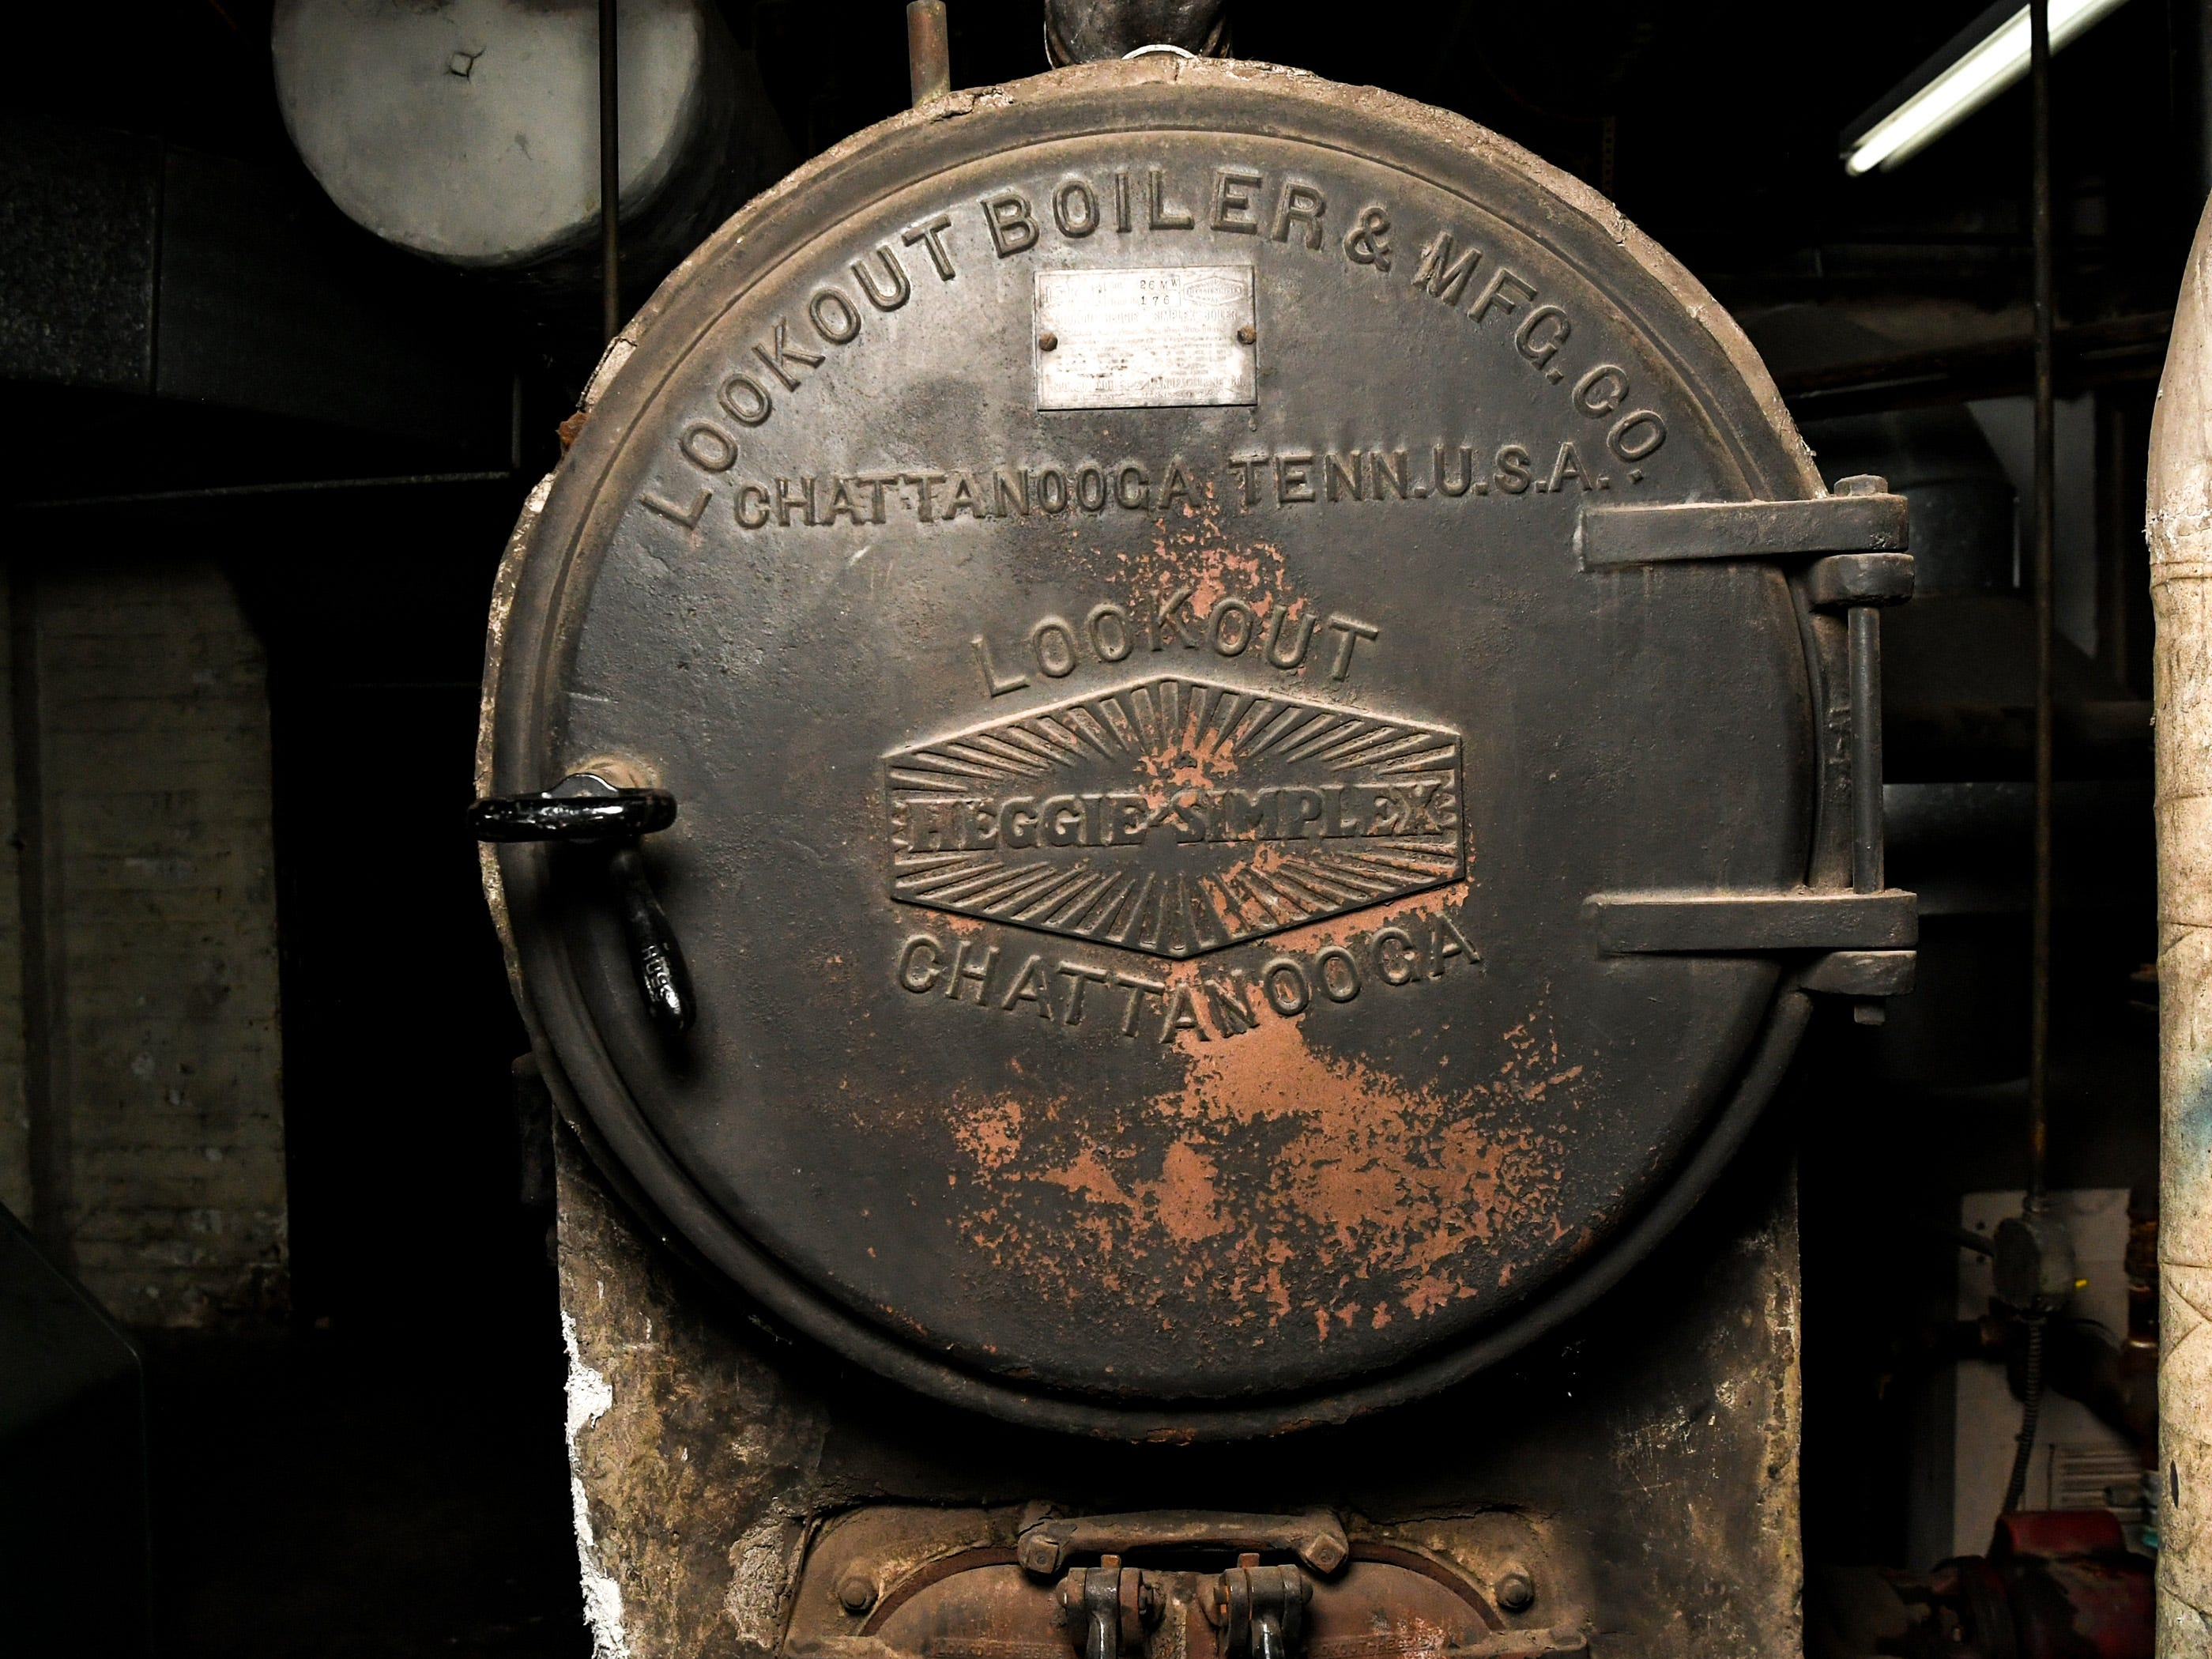 A Lookout Boiler & Manufacturing Company of Chattanooga, Tennessee furnace in the basement of the former post office inside the building at 401 North Main Street in downtown Anderson. Rick and Ann Kummrow pitched their plan to create The Historic Postmark Anderson, a mix of housing upstairs, retail on the main floor, and possibly a restaurant downstairs. The structure built in 1909 was previously a funeral home, and before that a United States Post Office.